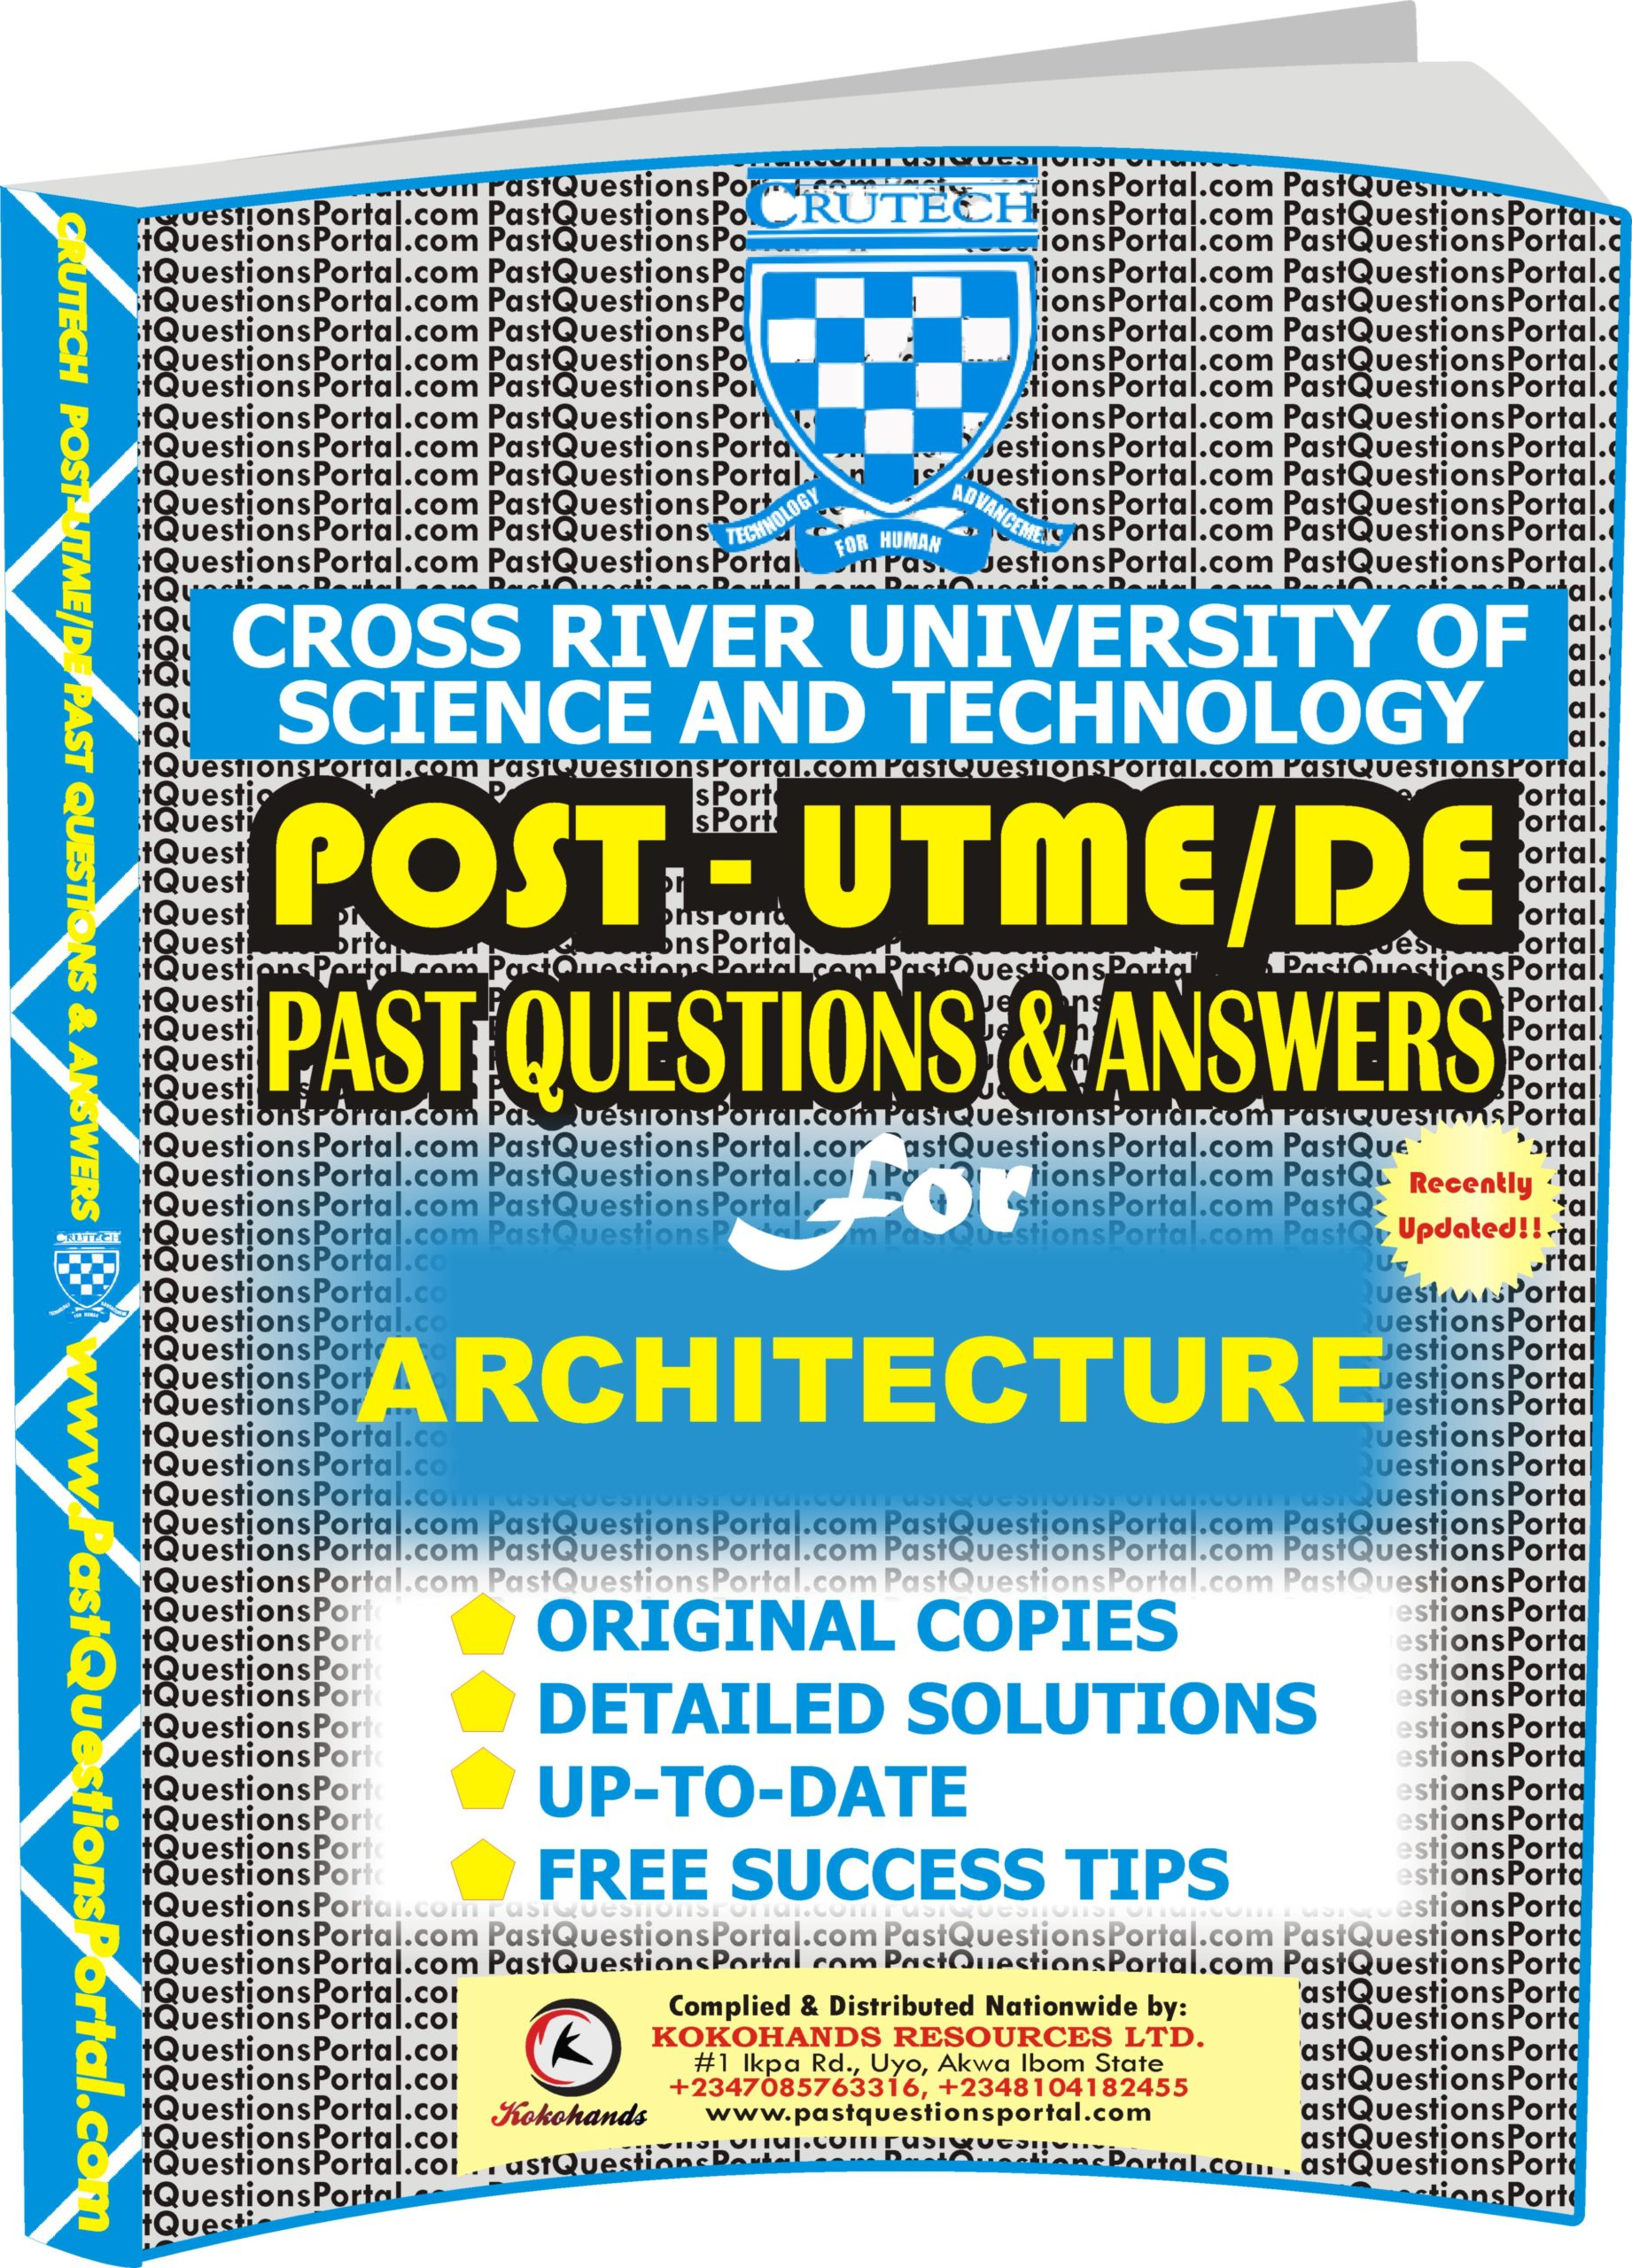 CRUTECH Post UTME Past Questions for ARCHITECTURE